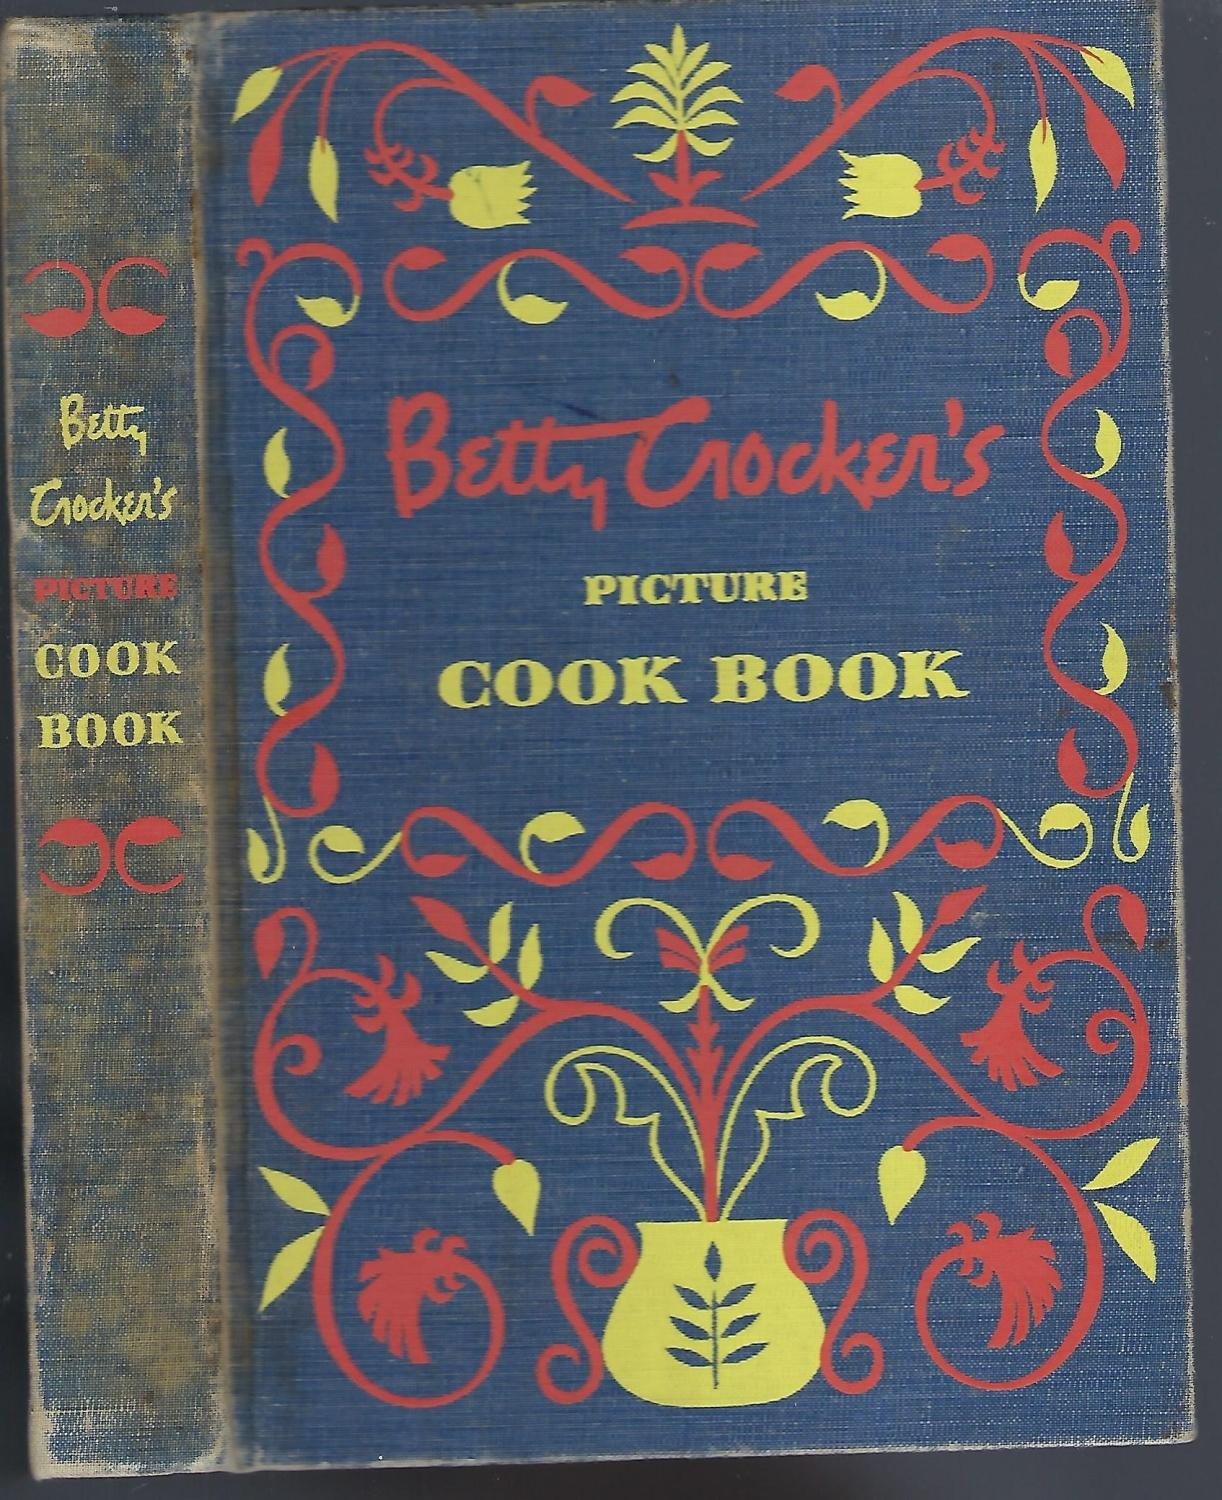 Betty Crocker/'s Picture Cook Book Gift Tags Retro Cooking Gift Tags,